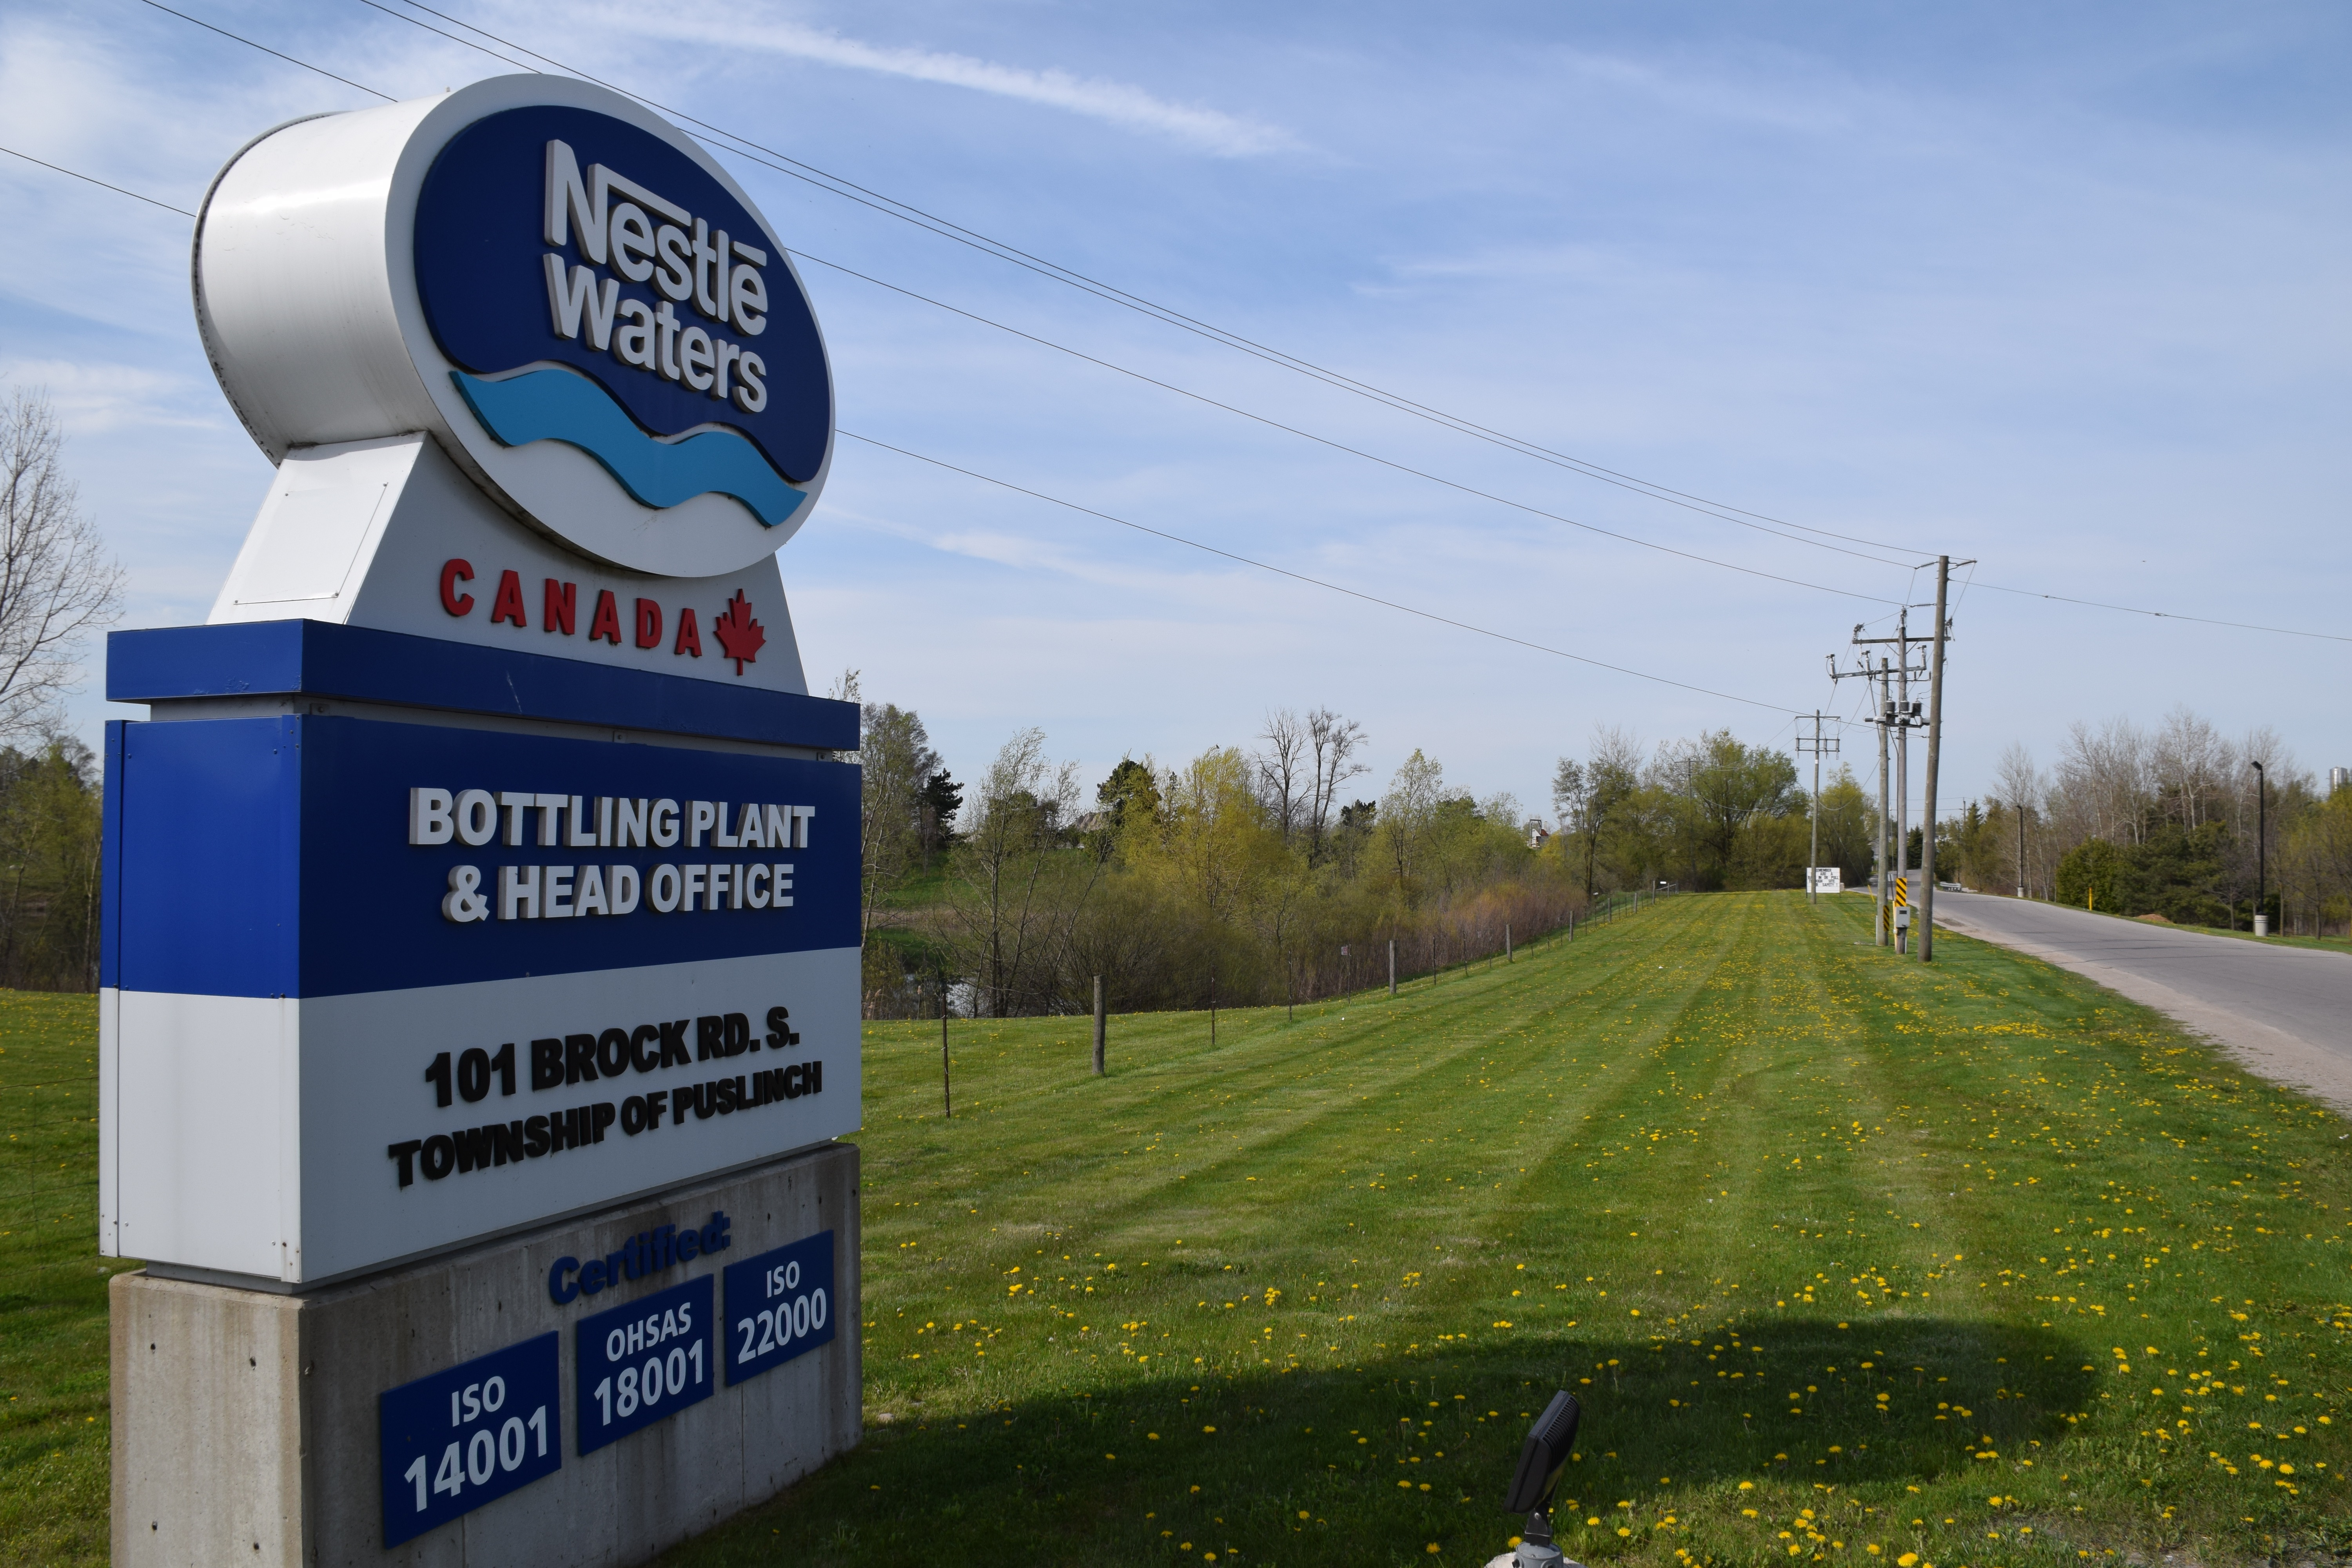 Nestlé Water Canada offers olive branch to Township of